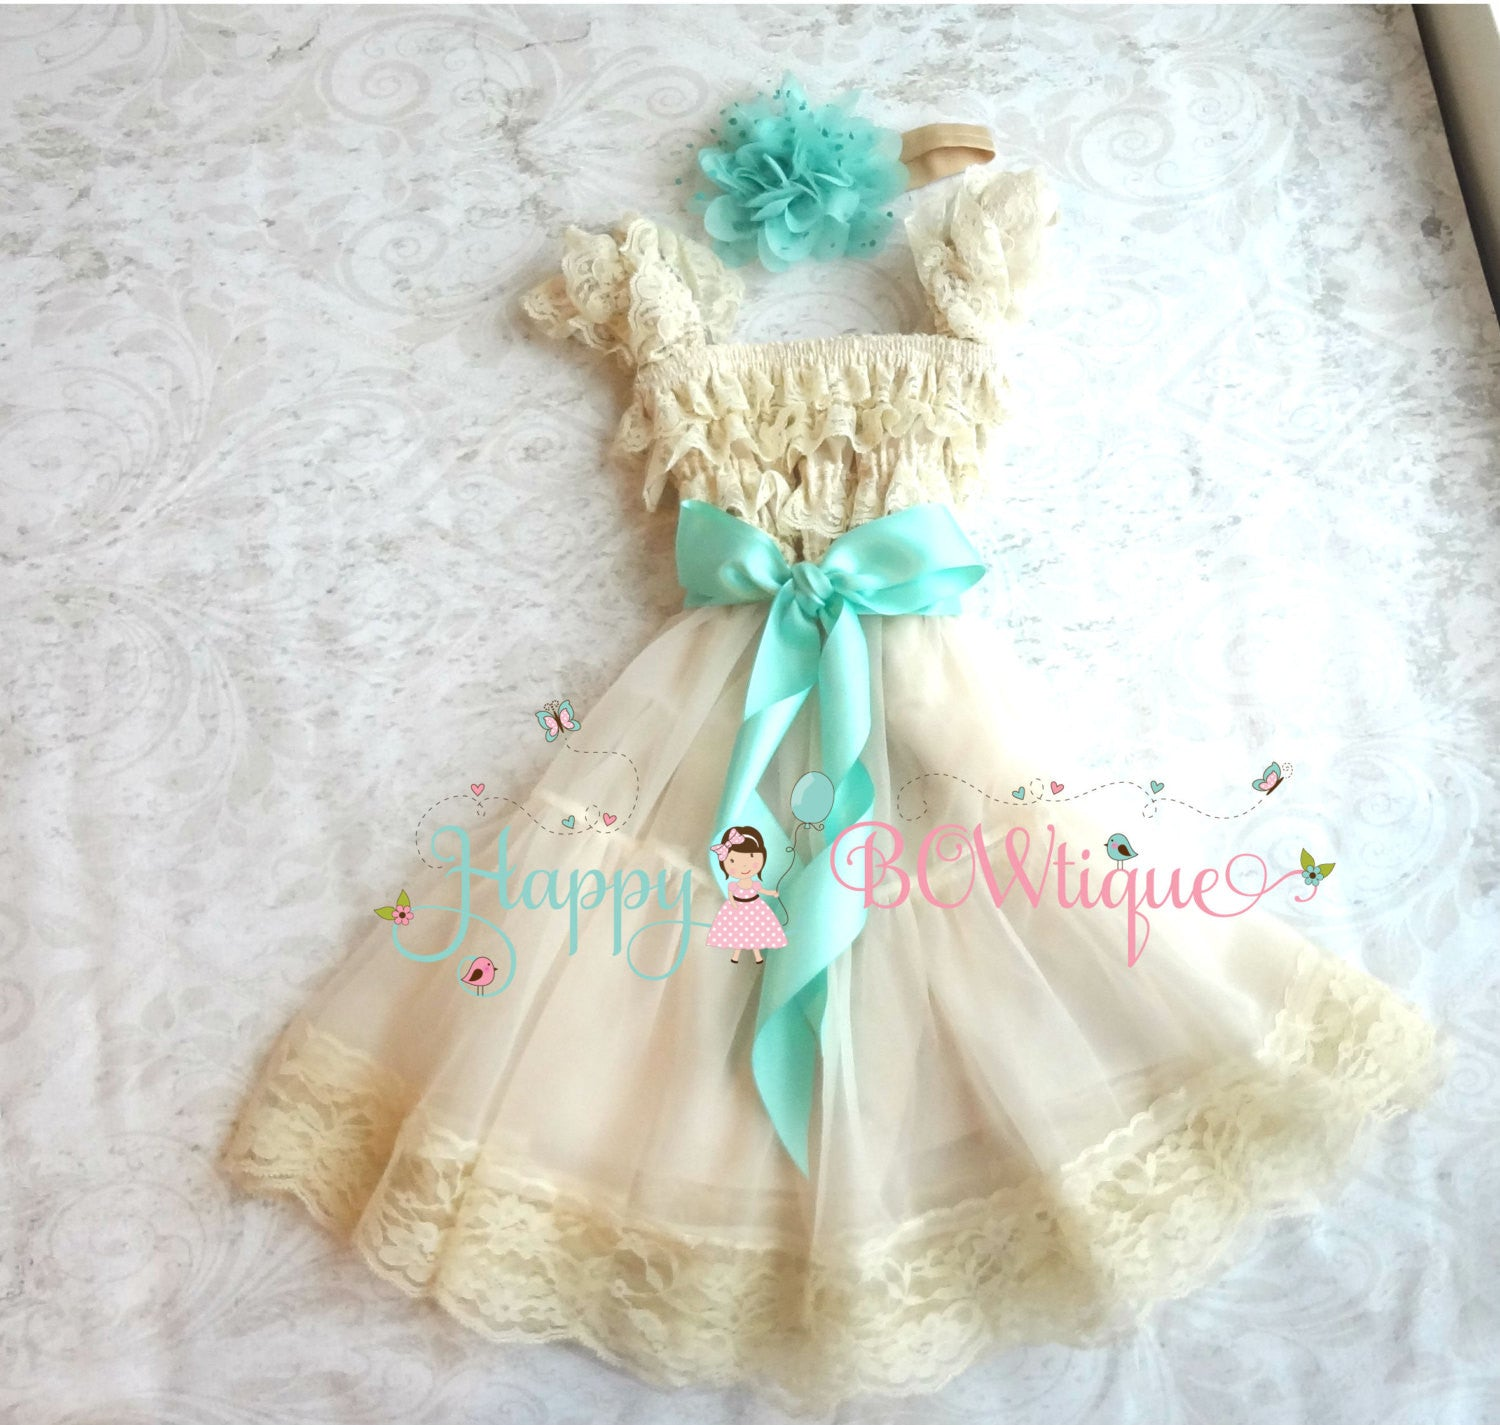 Flower girls dress| Champagne Mint dress set - Happy BOWtique - children's clothing, Baby Girl clothing